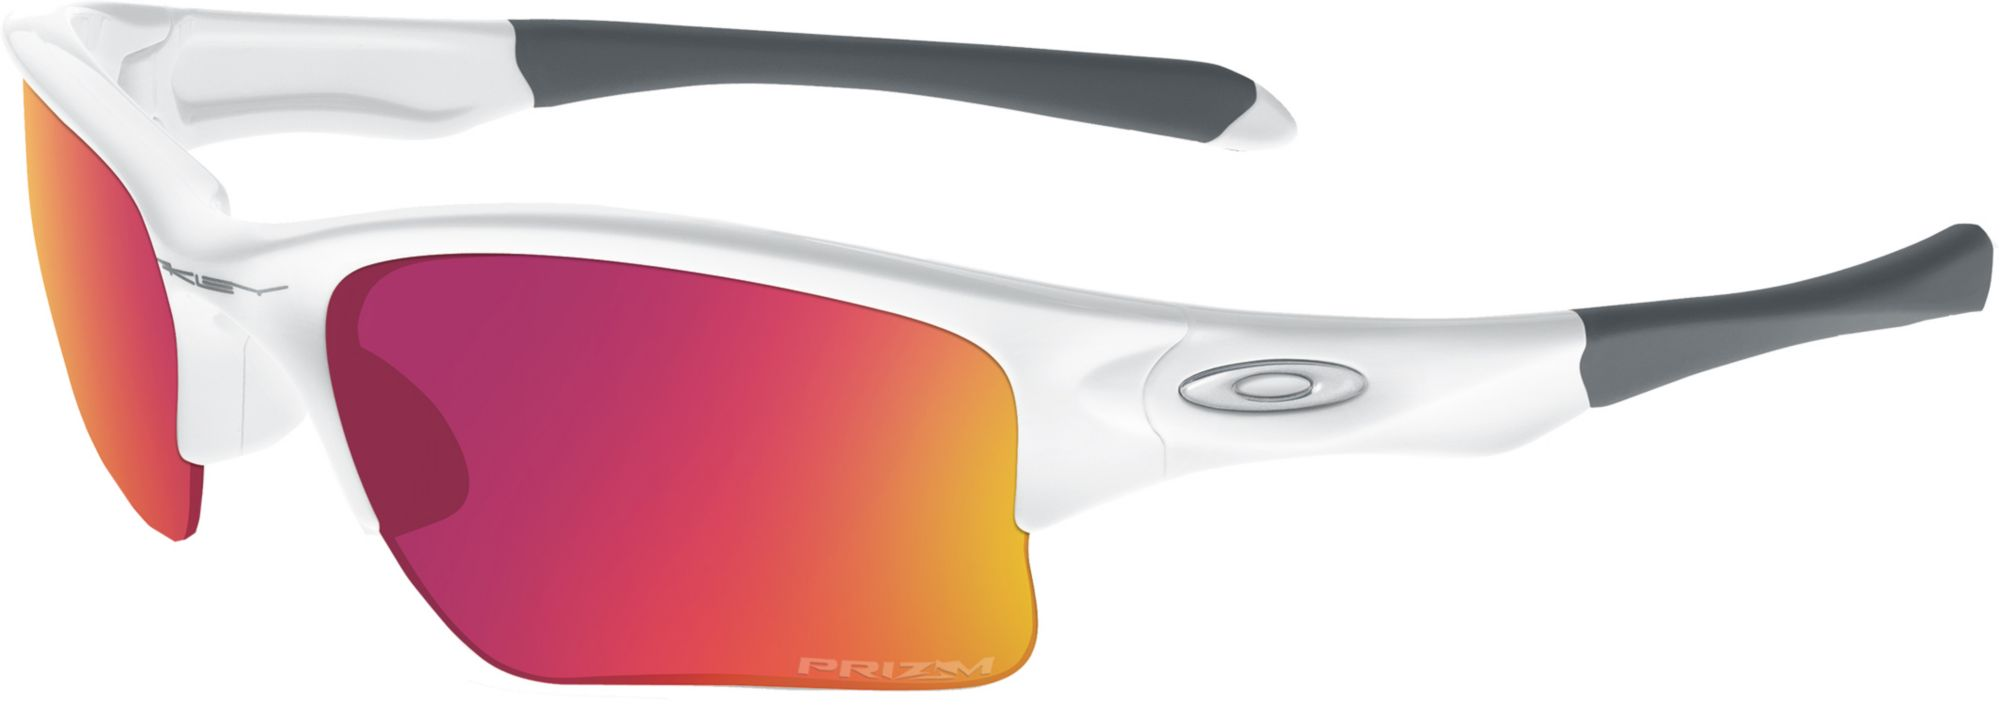 oakley prizm baseball flak jacket xlj sunglasses  product image oakley kids' prizm baseball quarter jacket sunglasses